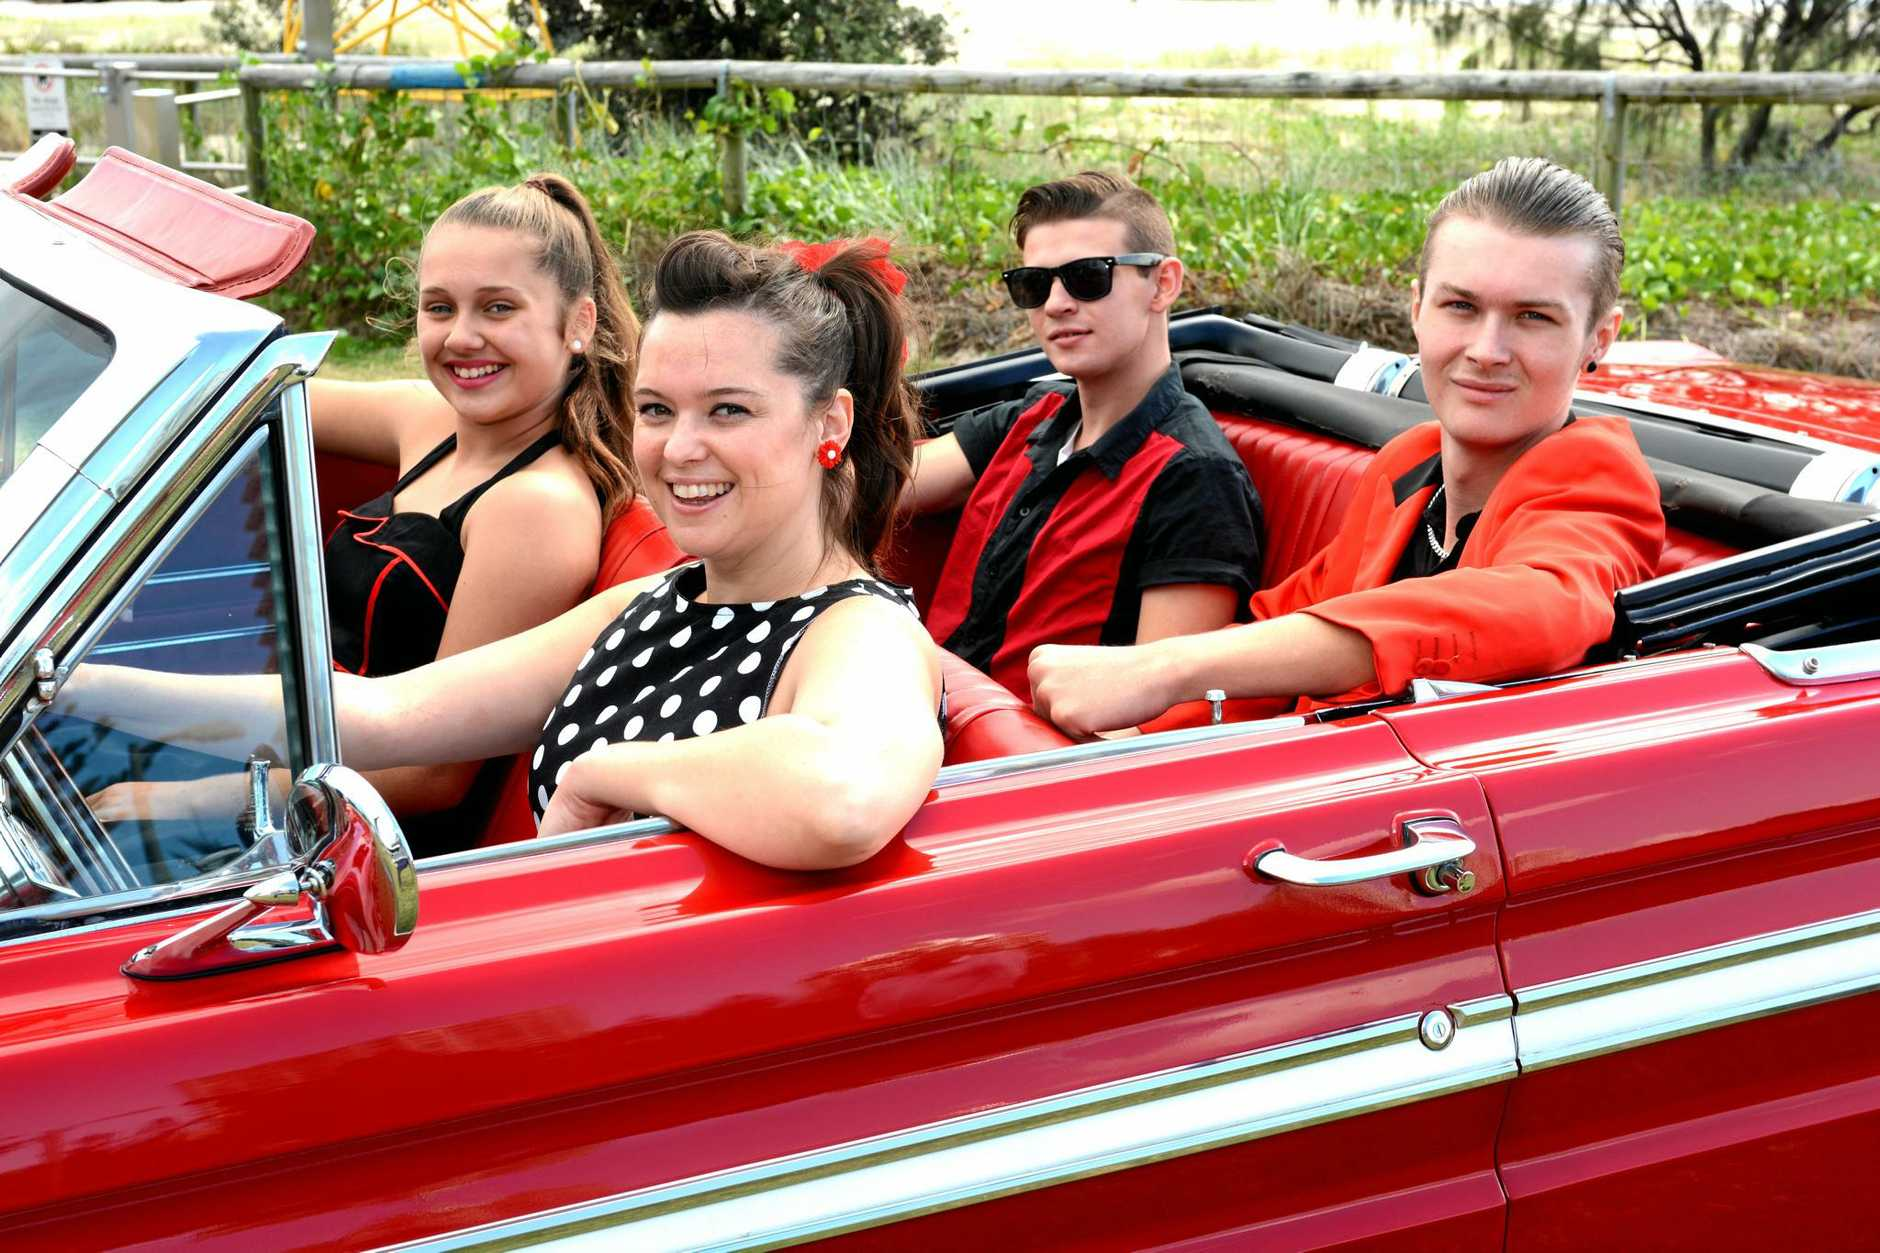 Cadillac Rock 'n' roll dancers Emma Wilkinson, Natalie Rowe, Jake Maloney and Mitch Vaegdom check out a vintage Ford at Coolangatta on Thursday